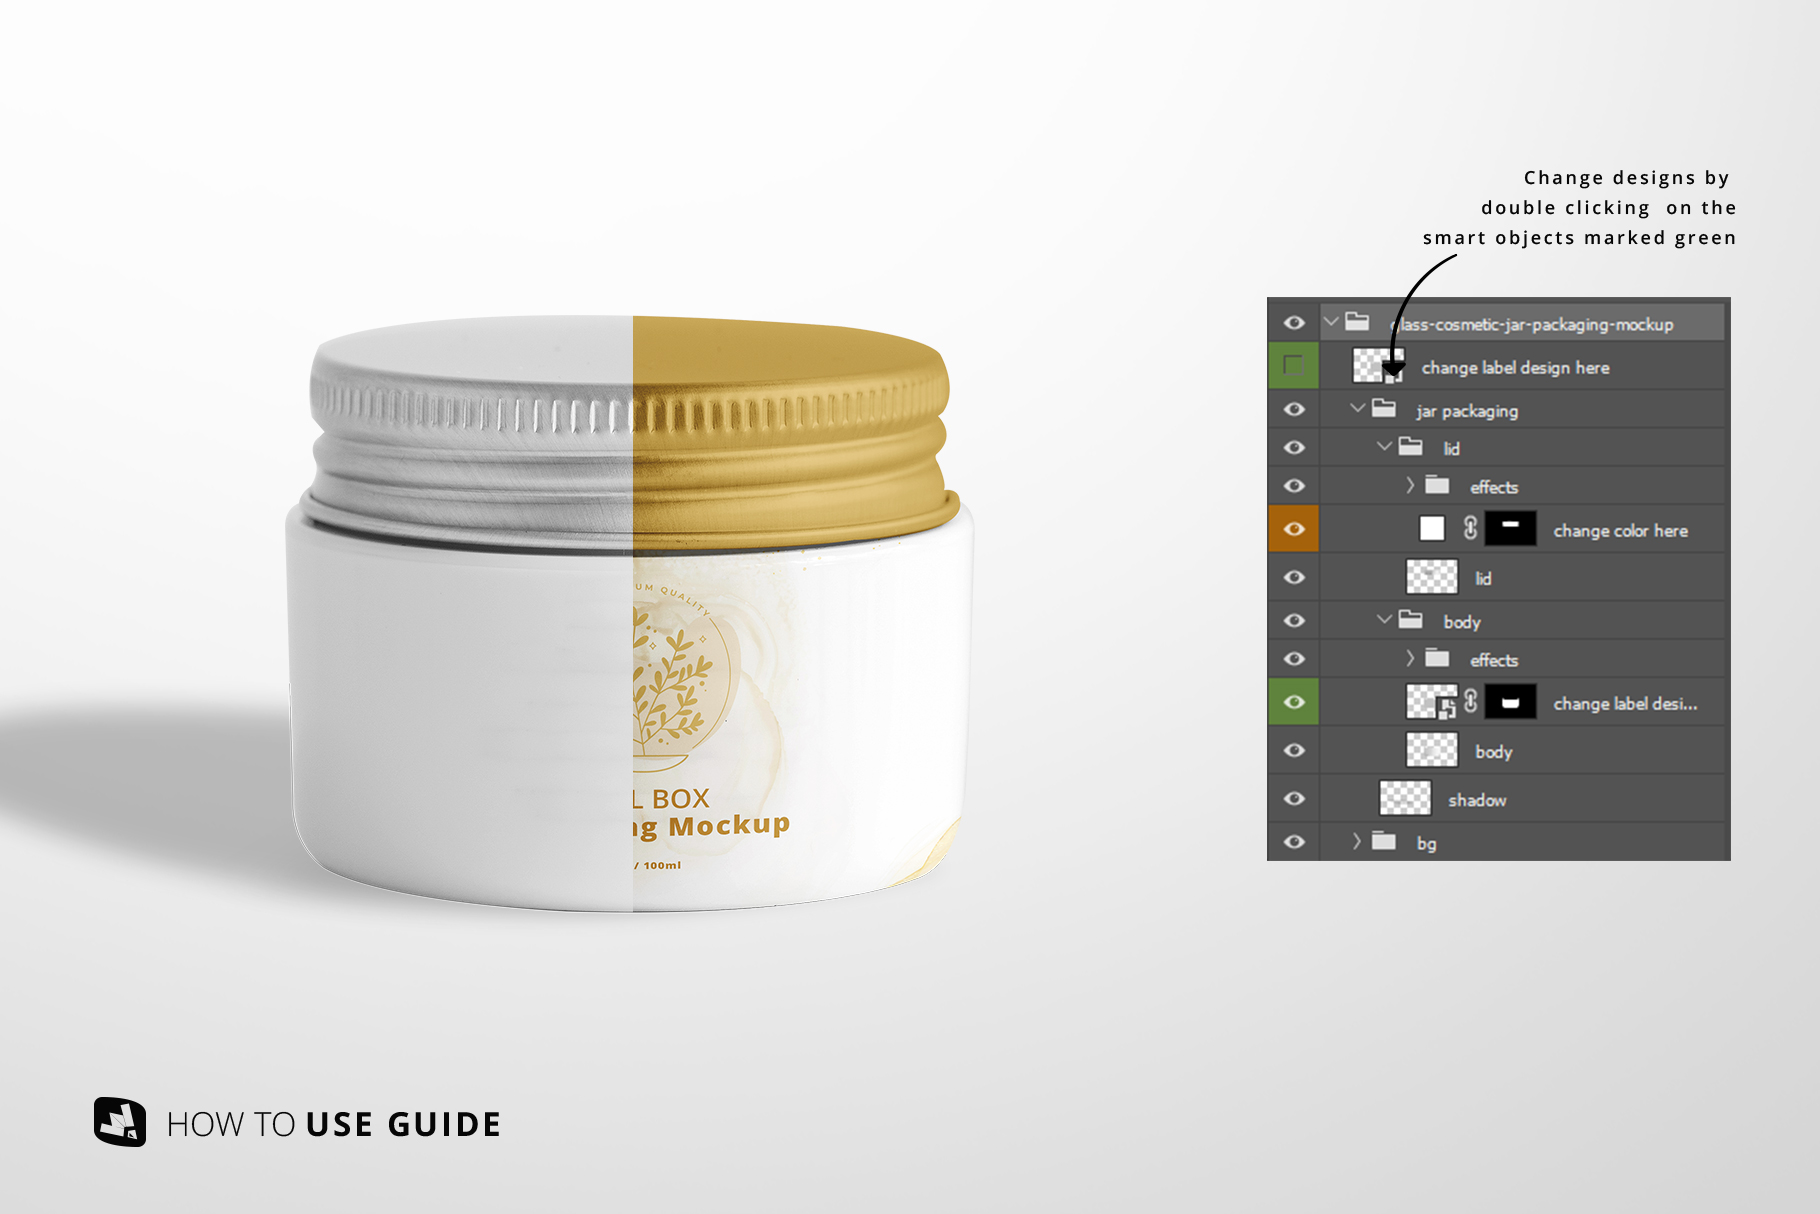 change label designs of the glass cosmetic jar packaging mockup